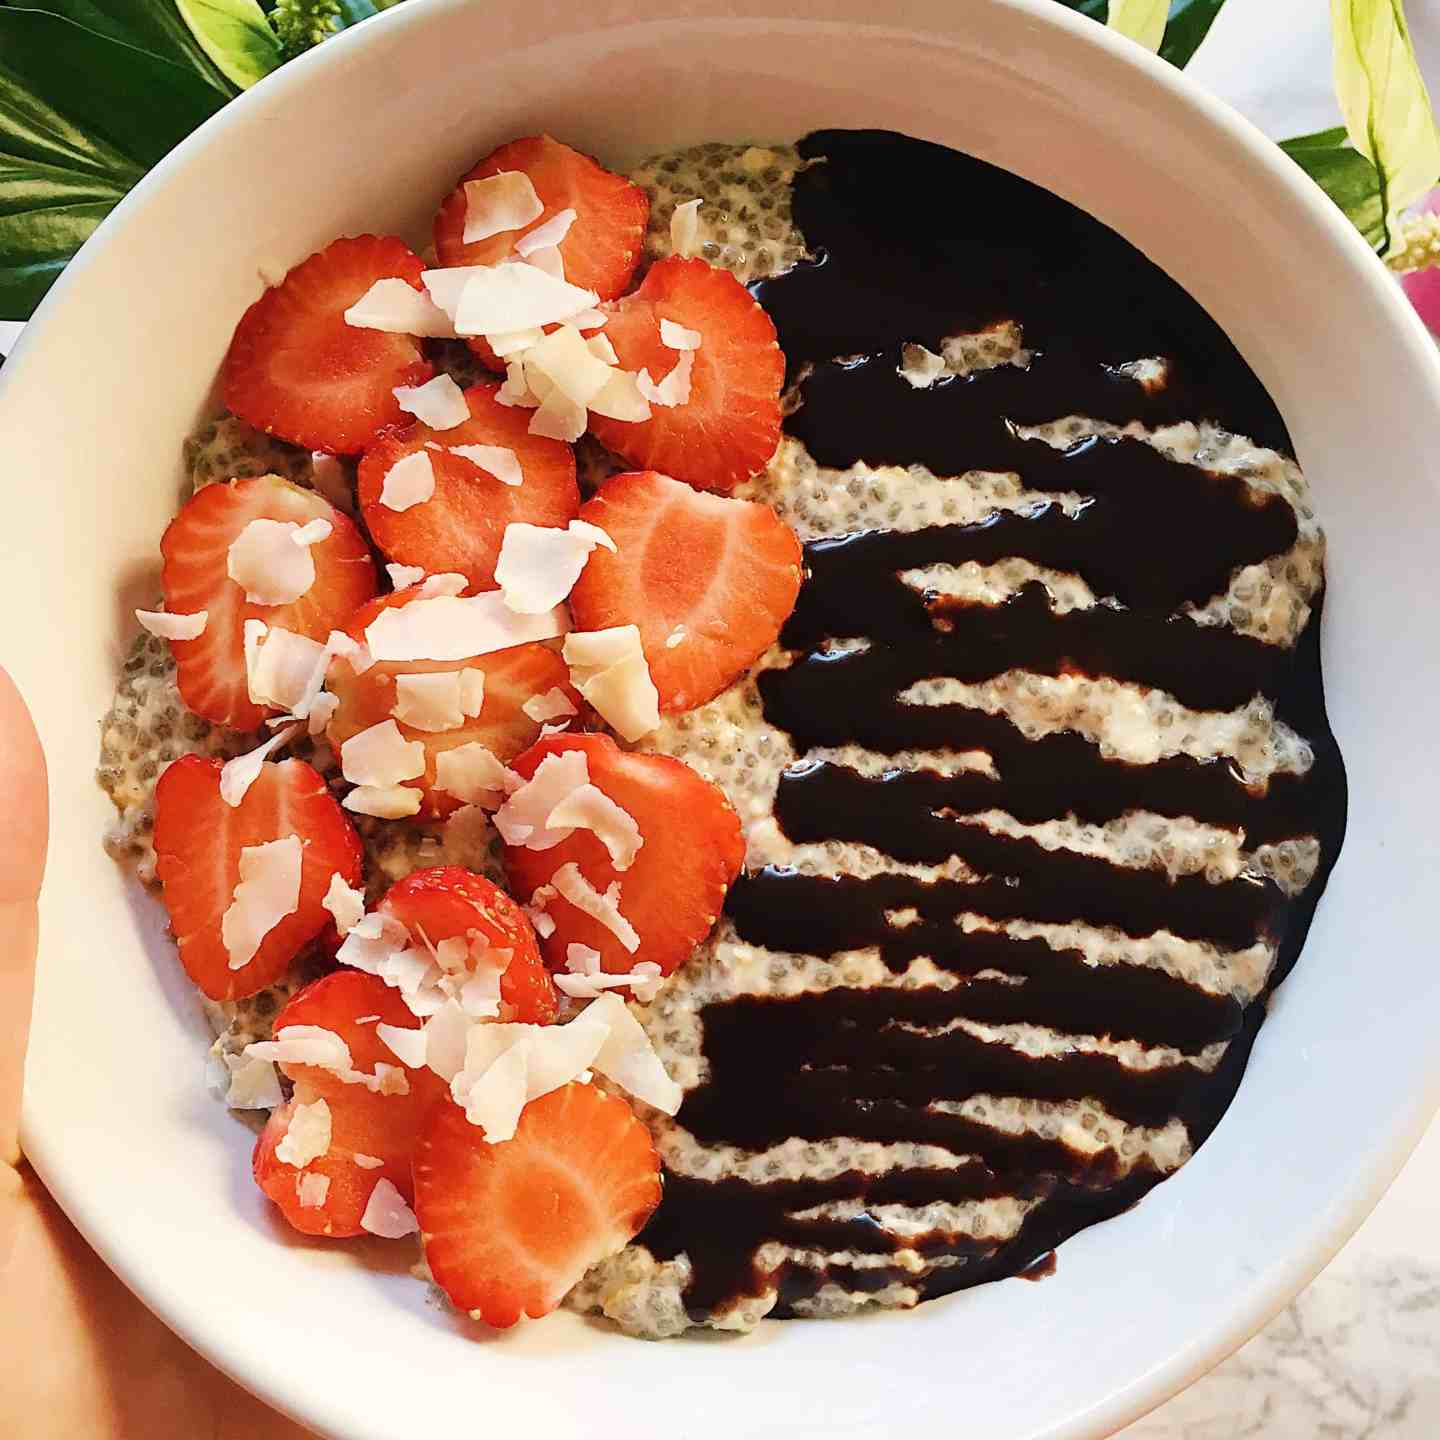 Chia Overnight Oats with Chocolate and Strawberry